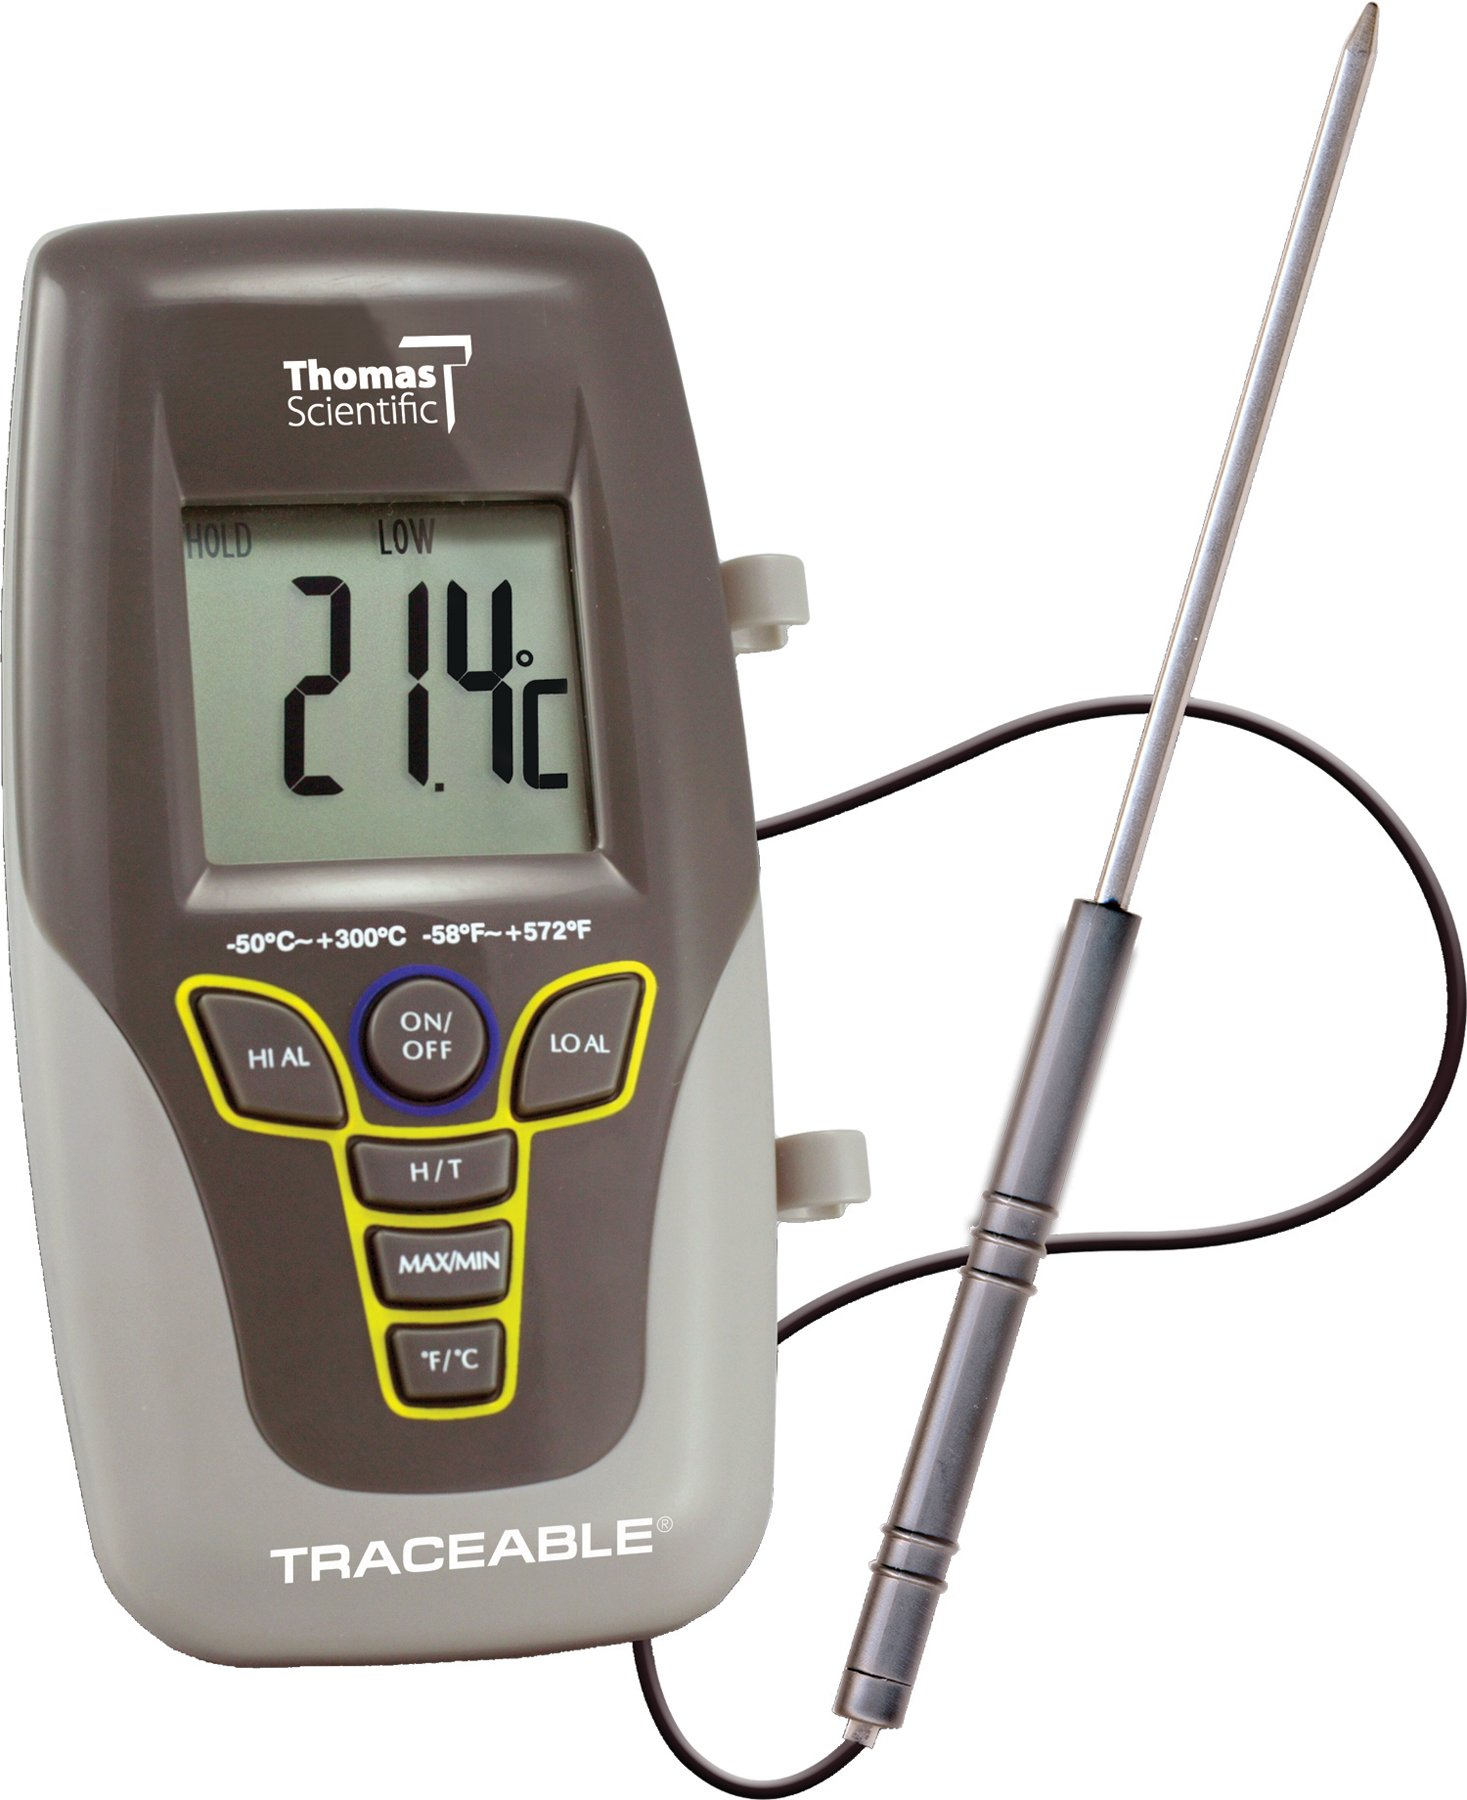 Thomas Traceable Kangaroo Thermometer, 7.5'' Probe Length, -58 to 572 degree F, -50 to 300 degree C